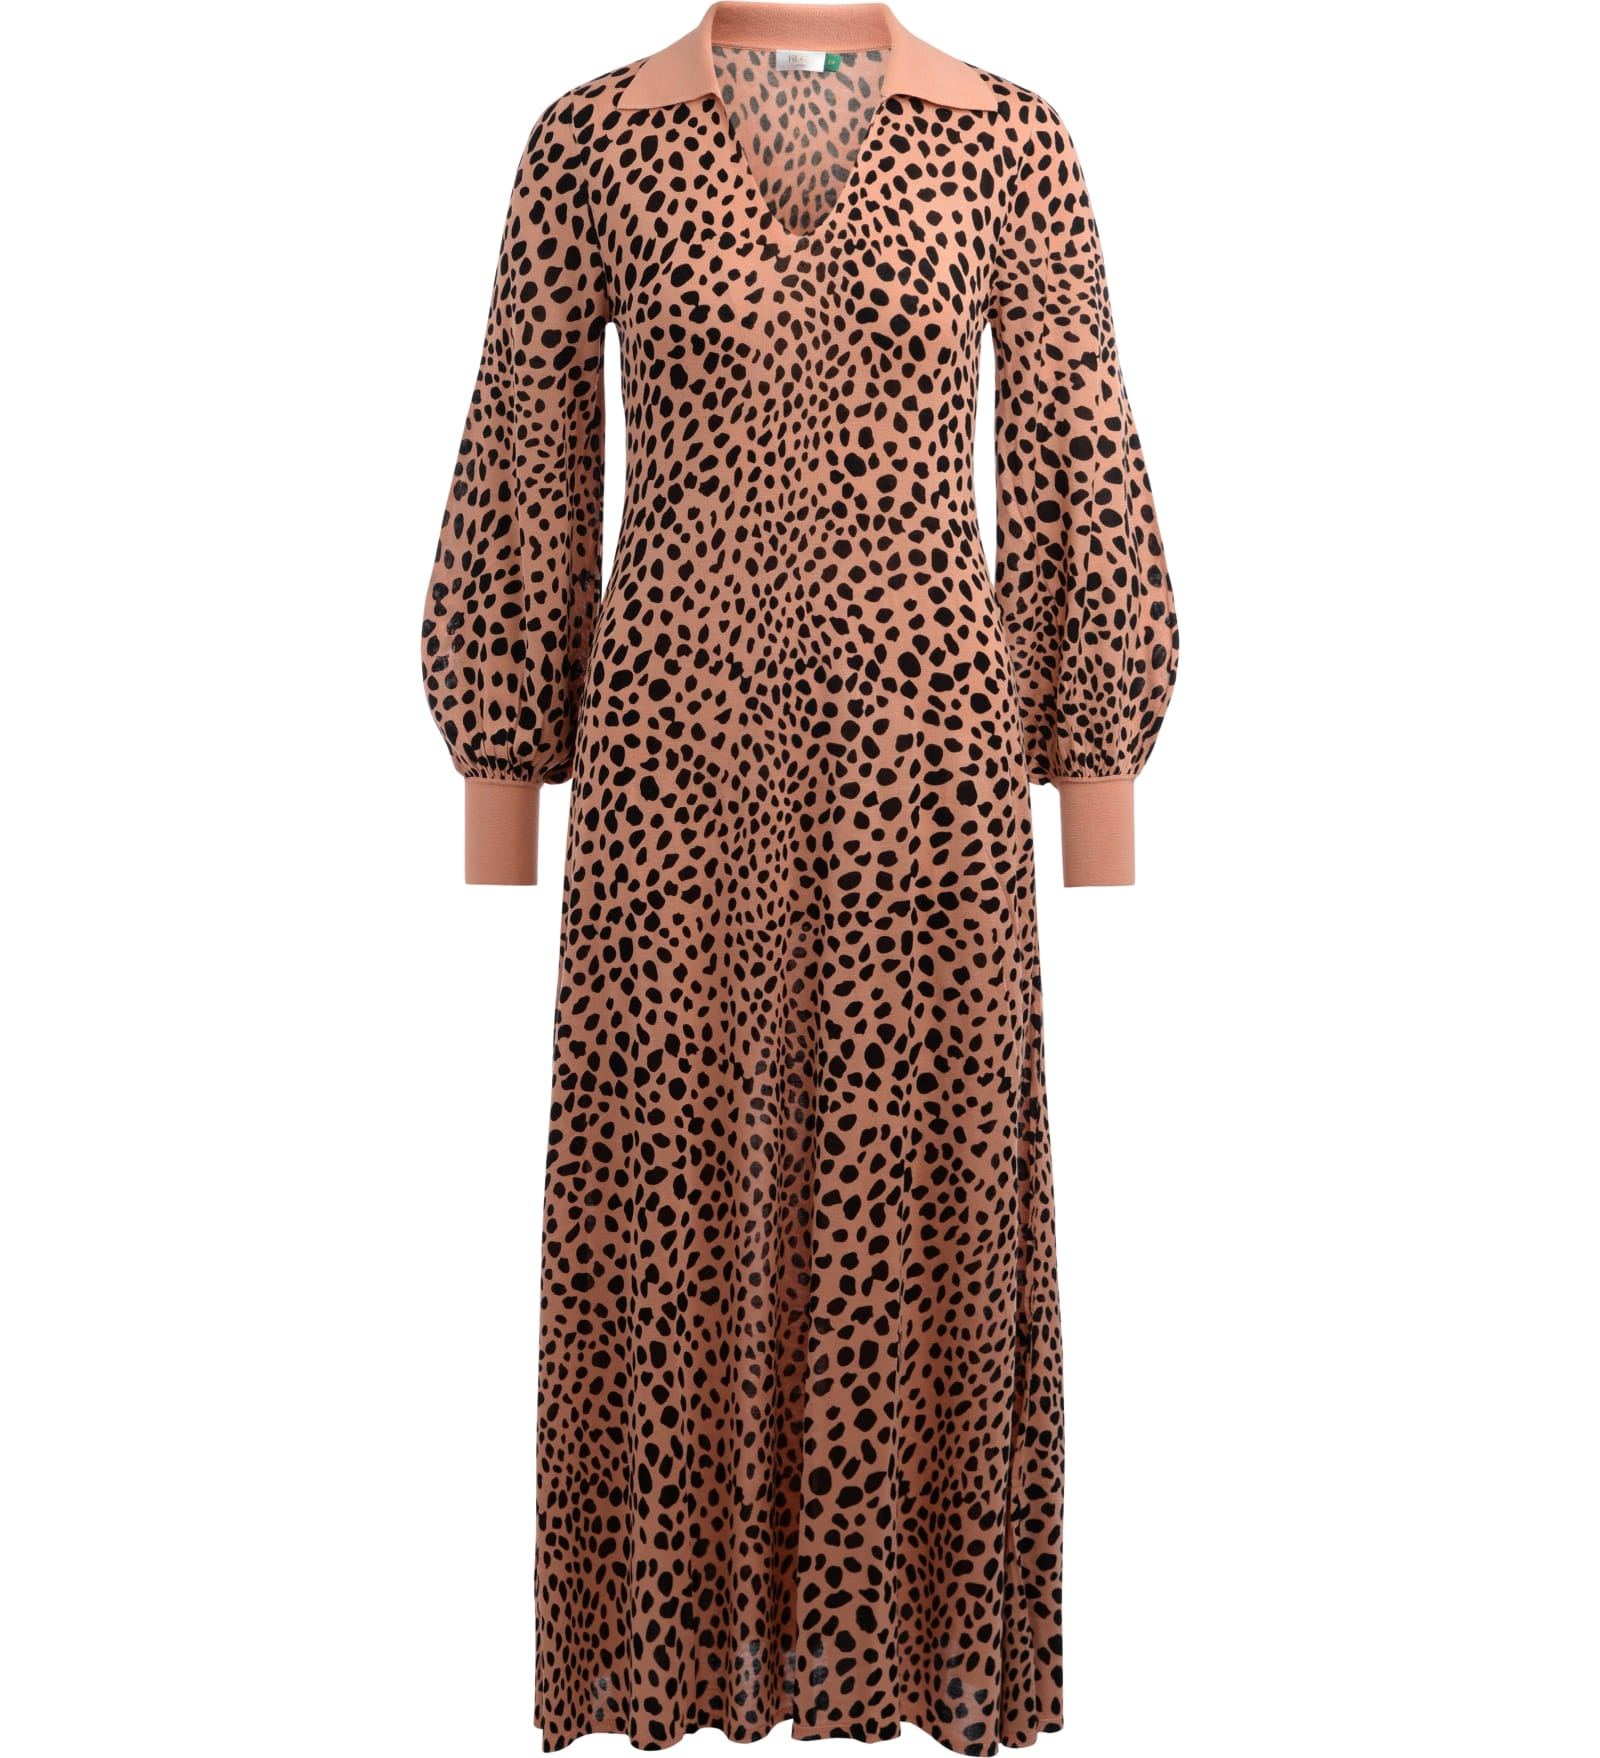 Buy Rixo Piper Dress In Leopard Print online, shop RIXO with free shipping